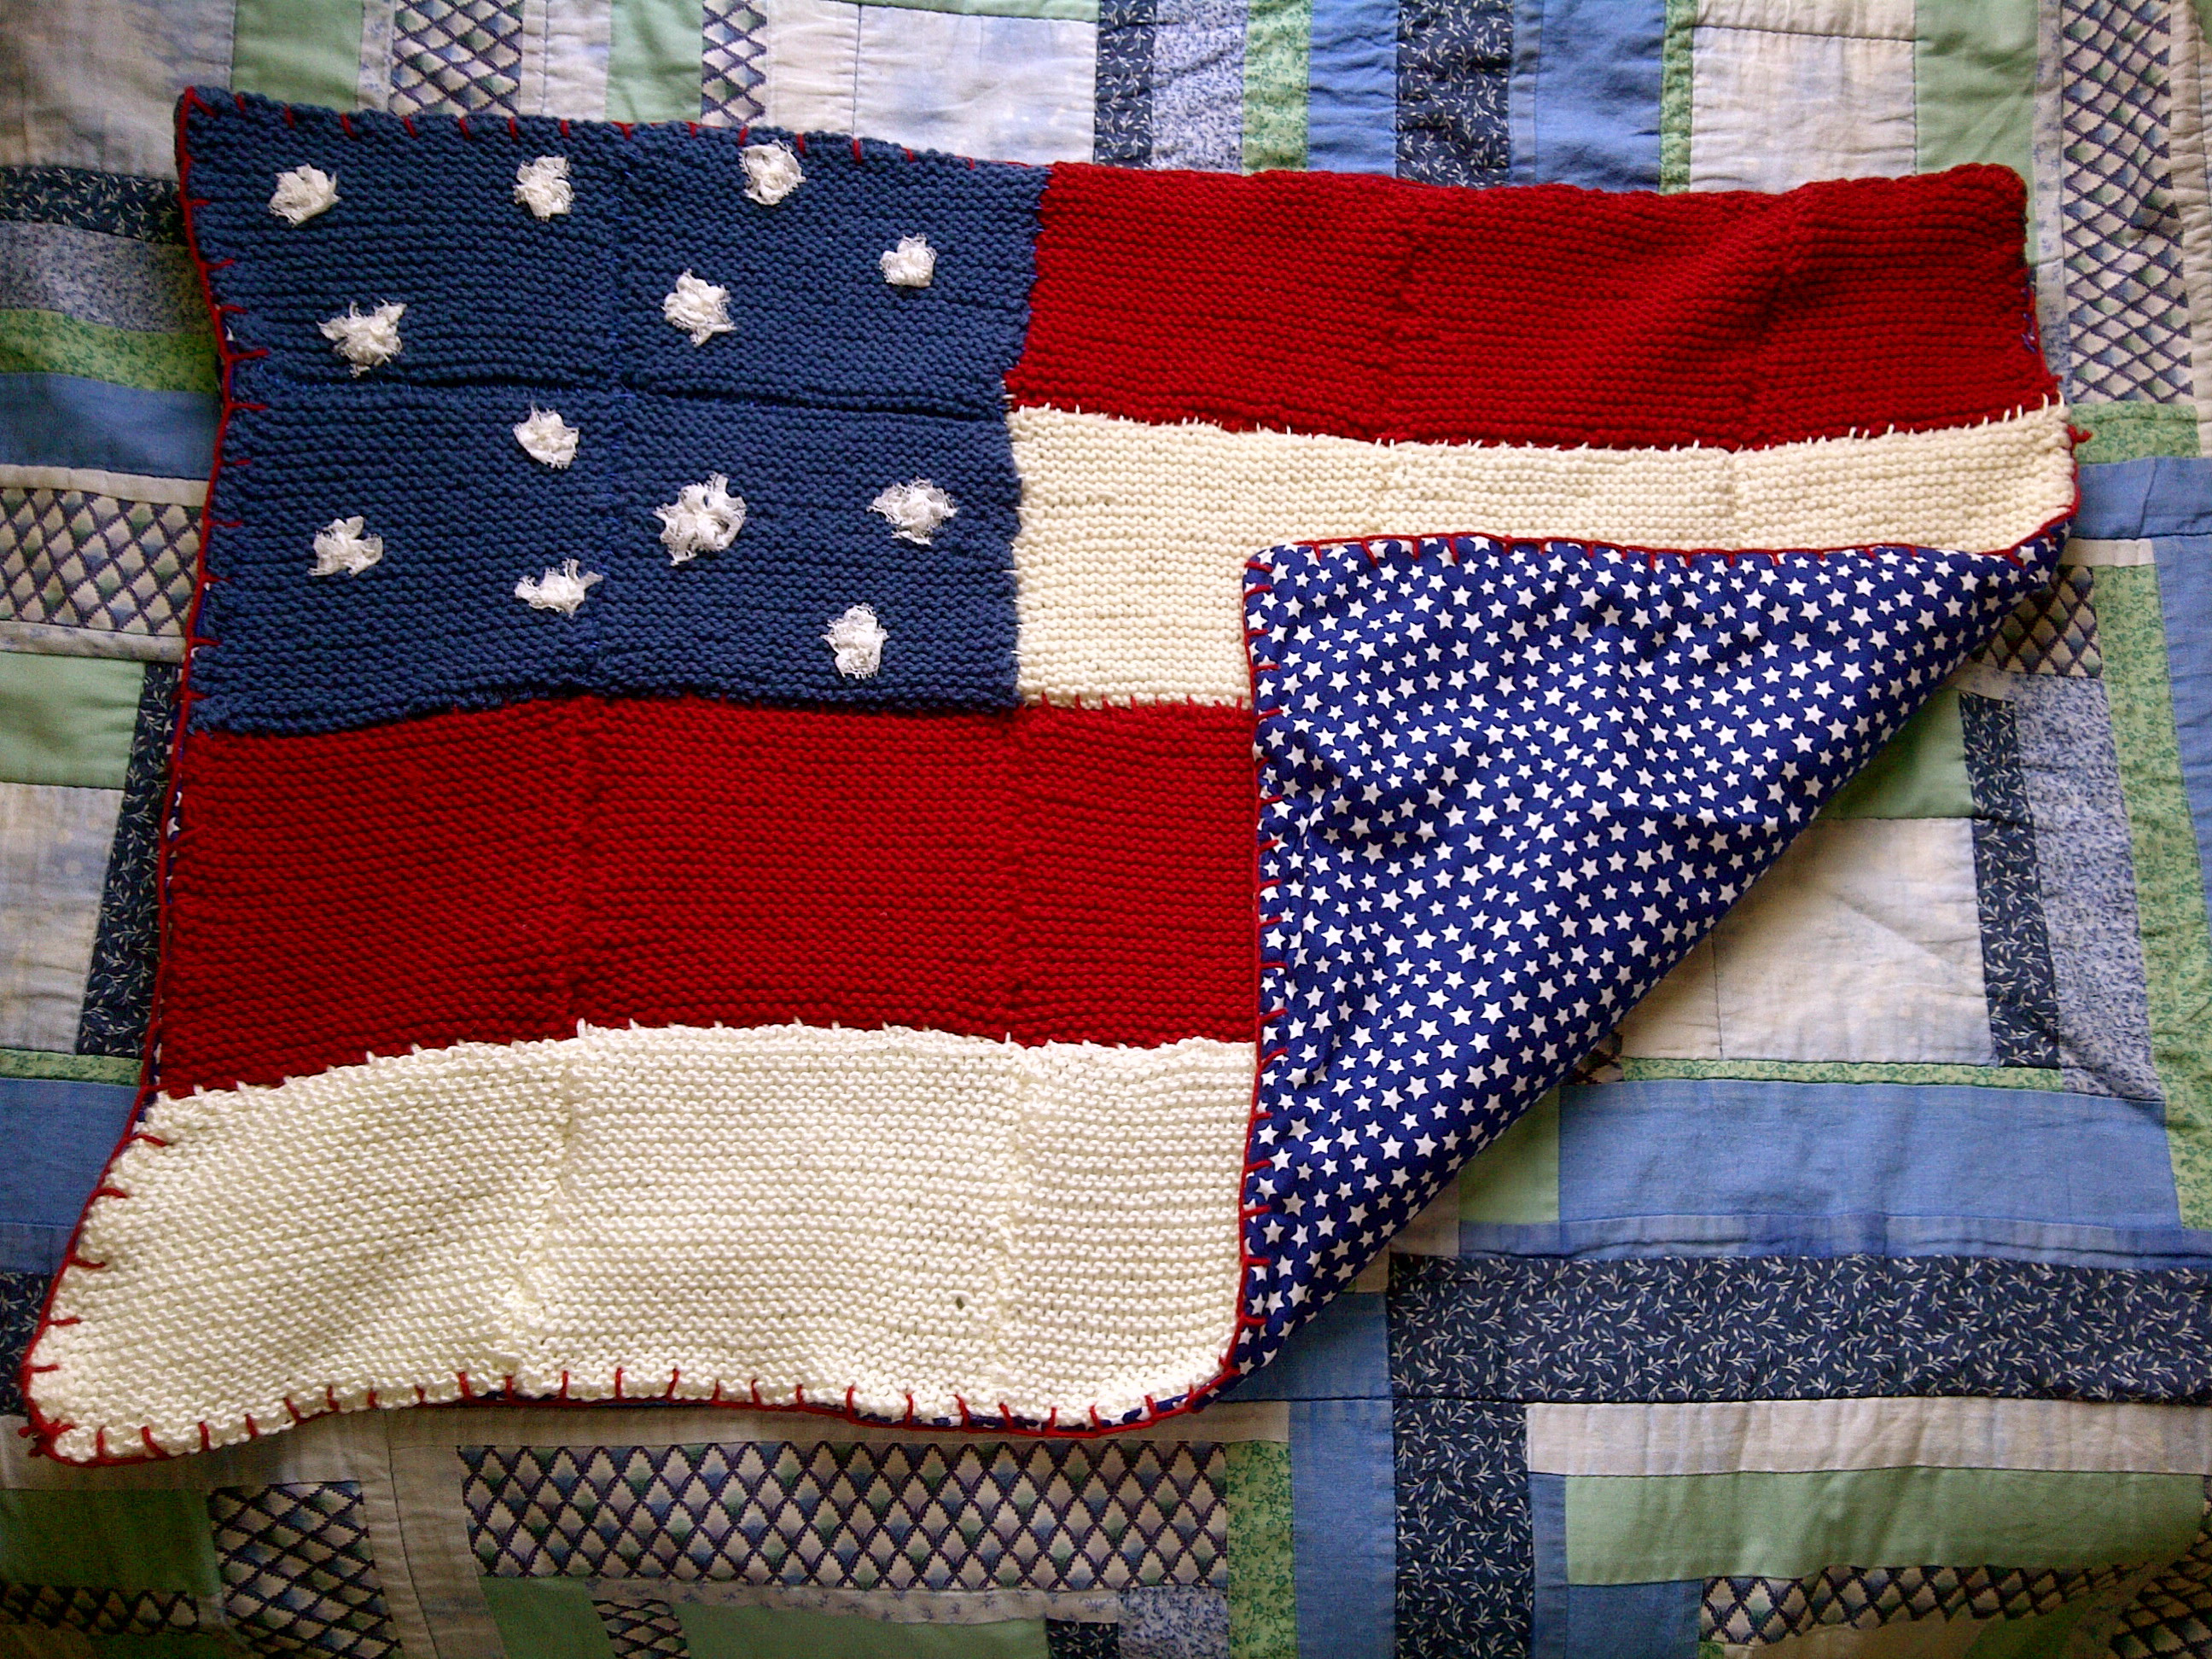 Best ideas about DIY Baby Blanket . Save or Pin DIY Knit a baby blanket Now.